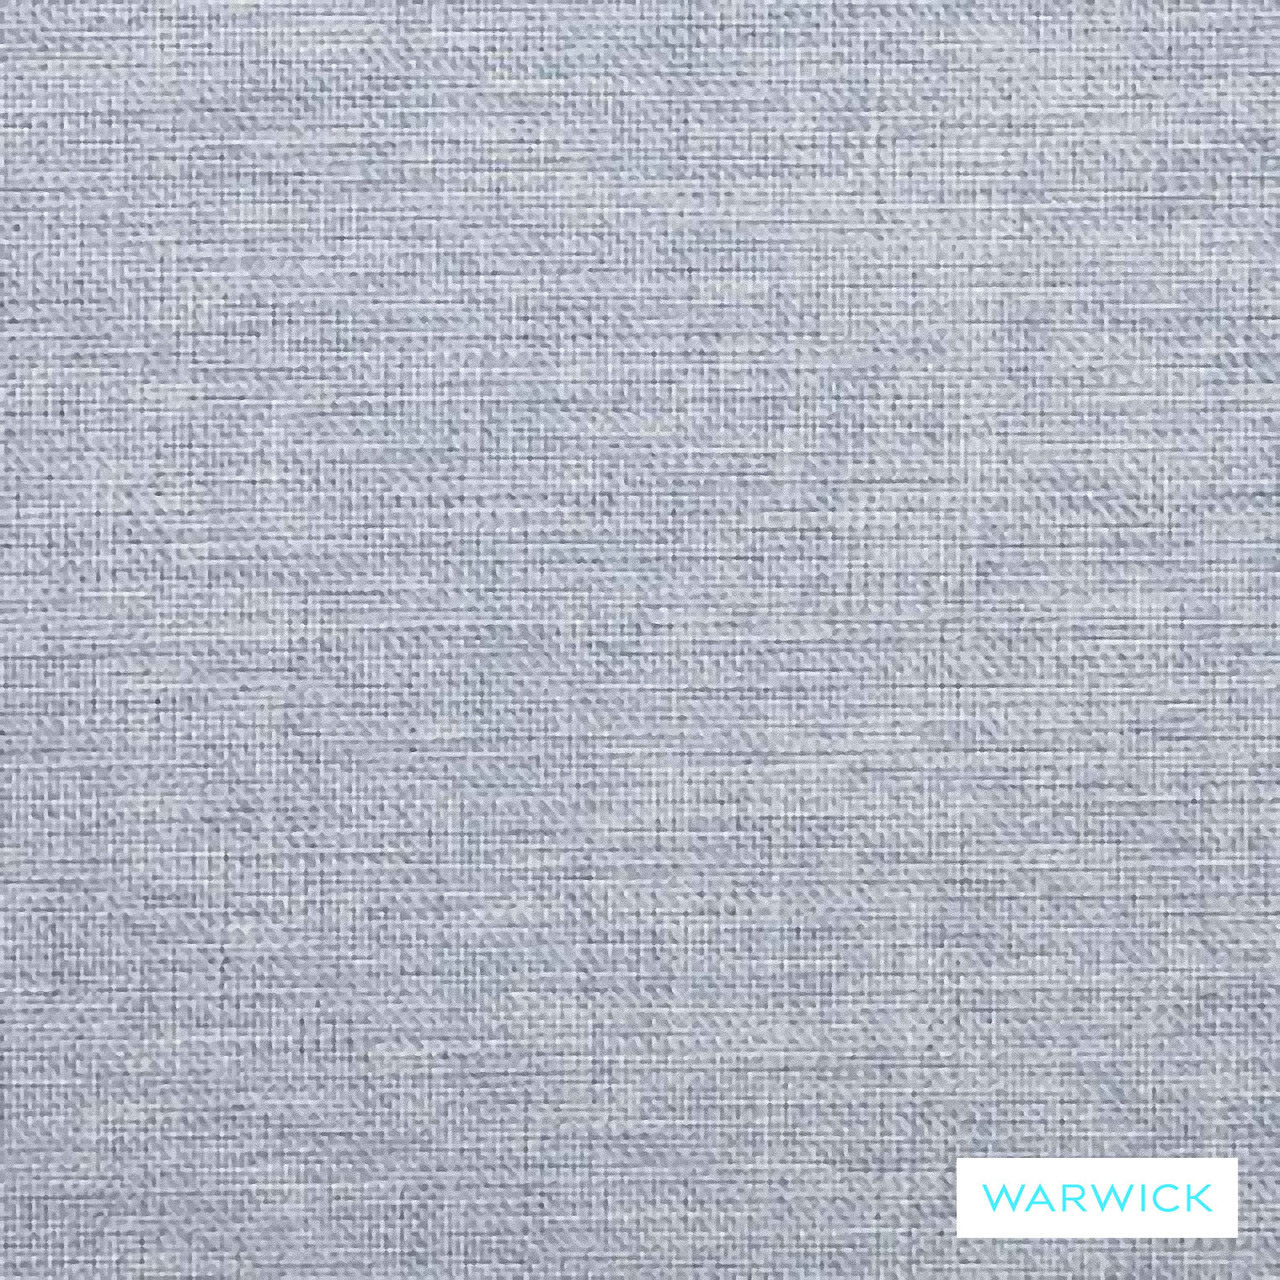 Warwick Beachcomber Mist  | Upholstery Fabric - Blue, Plain, Beach, Synthetic, Washable, Commercial Use, Halo, Natural